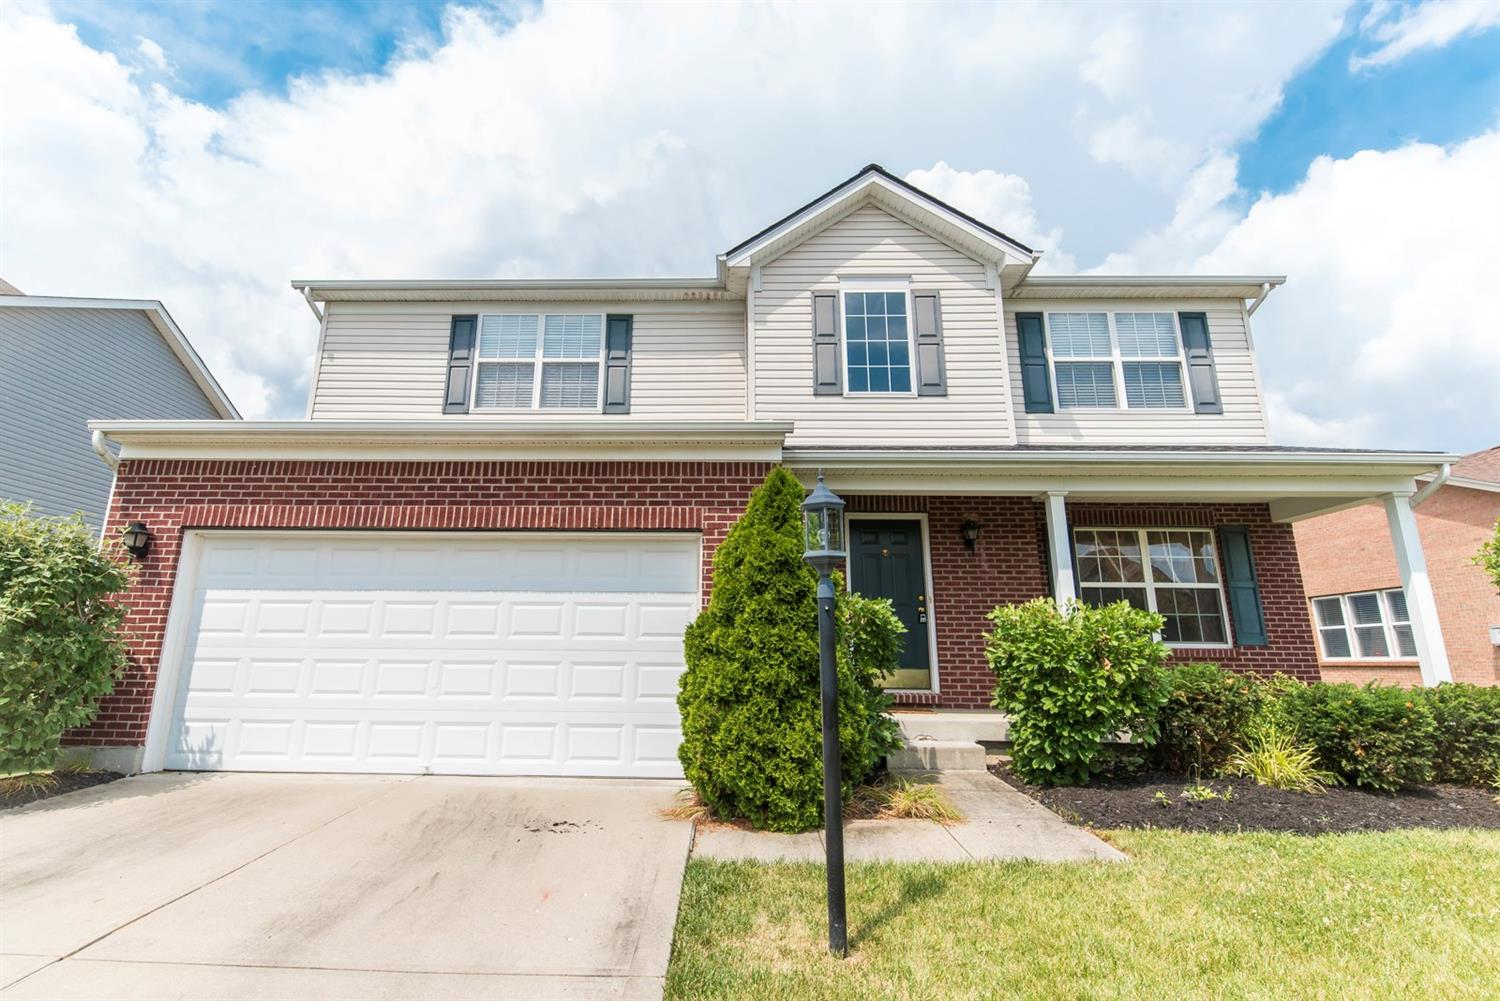 8215 Misty Shore Drive, West Chester, OH 45069